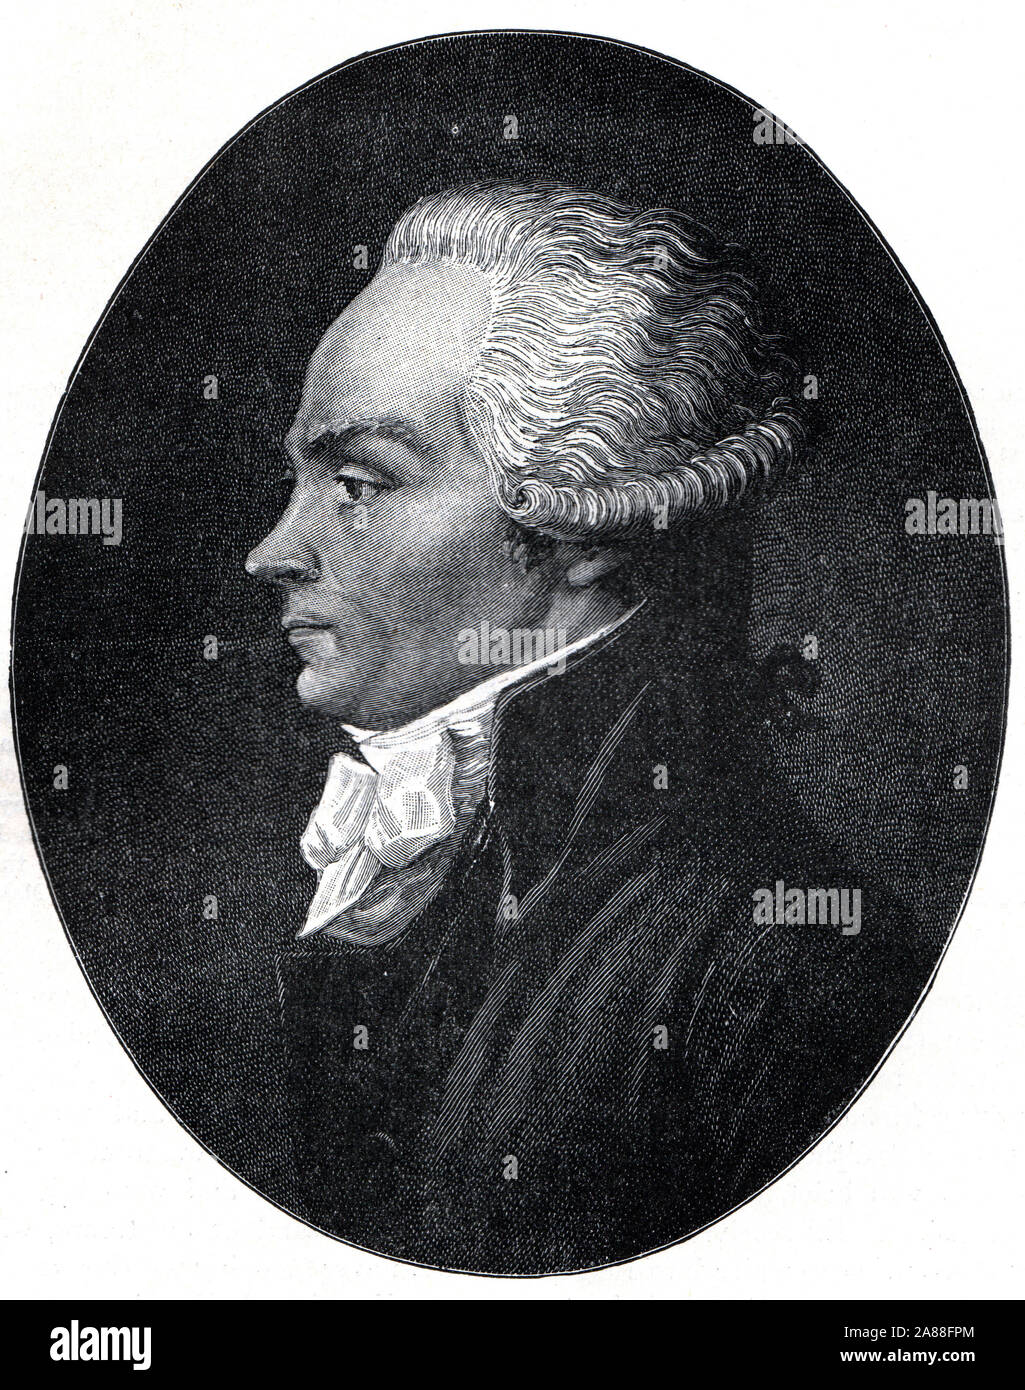 Portrait of Maximilien Robespierre an influenctial figure in the French Revolution.  Black and White Illustration; Stock Photo